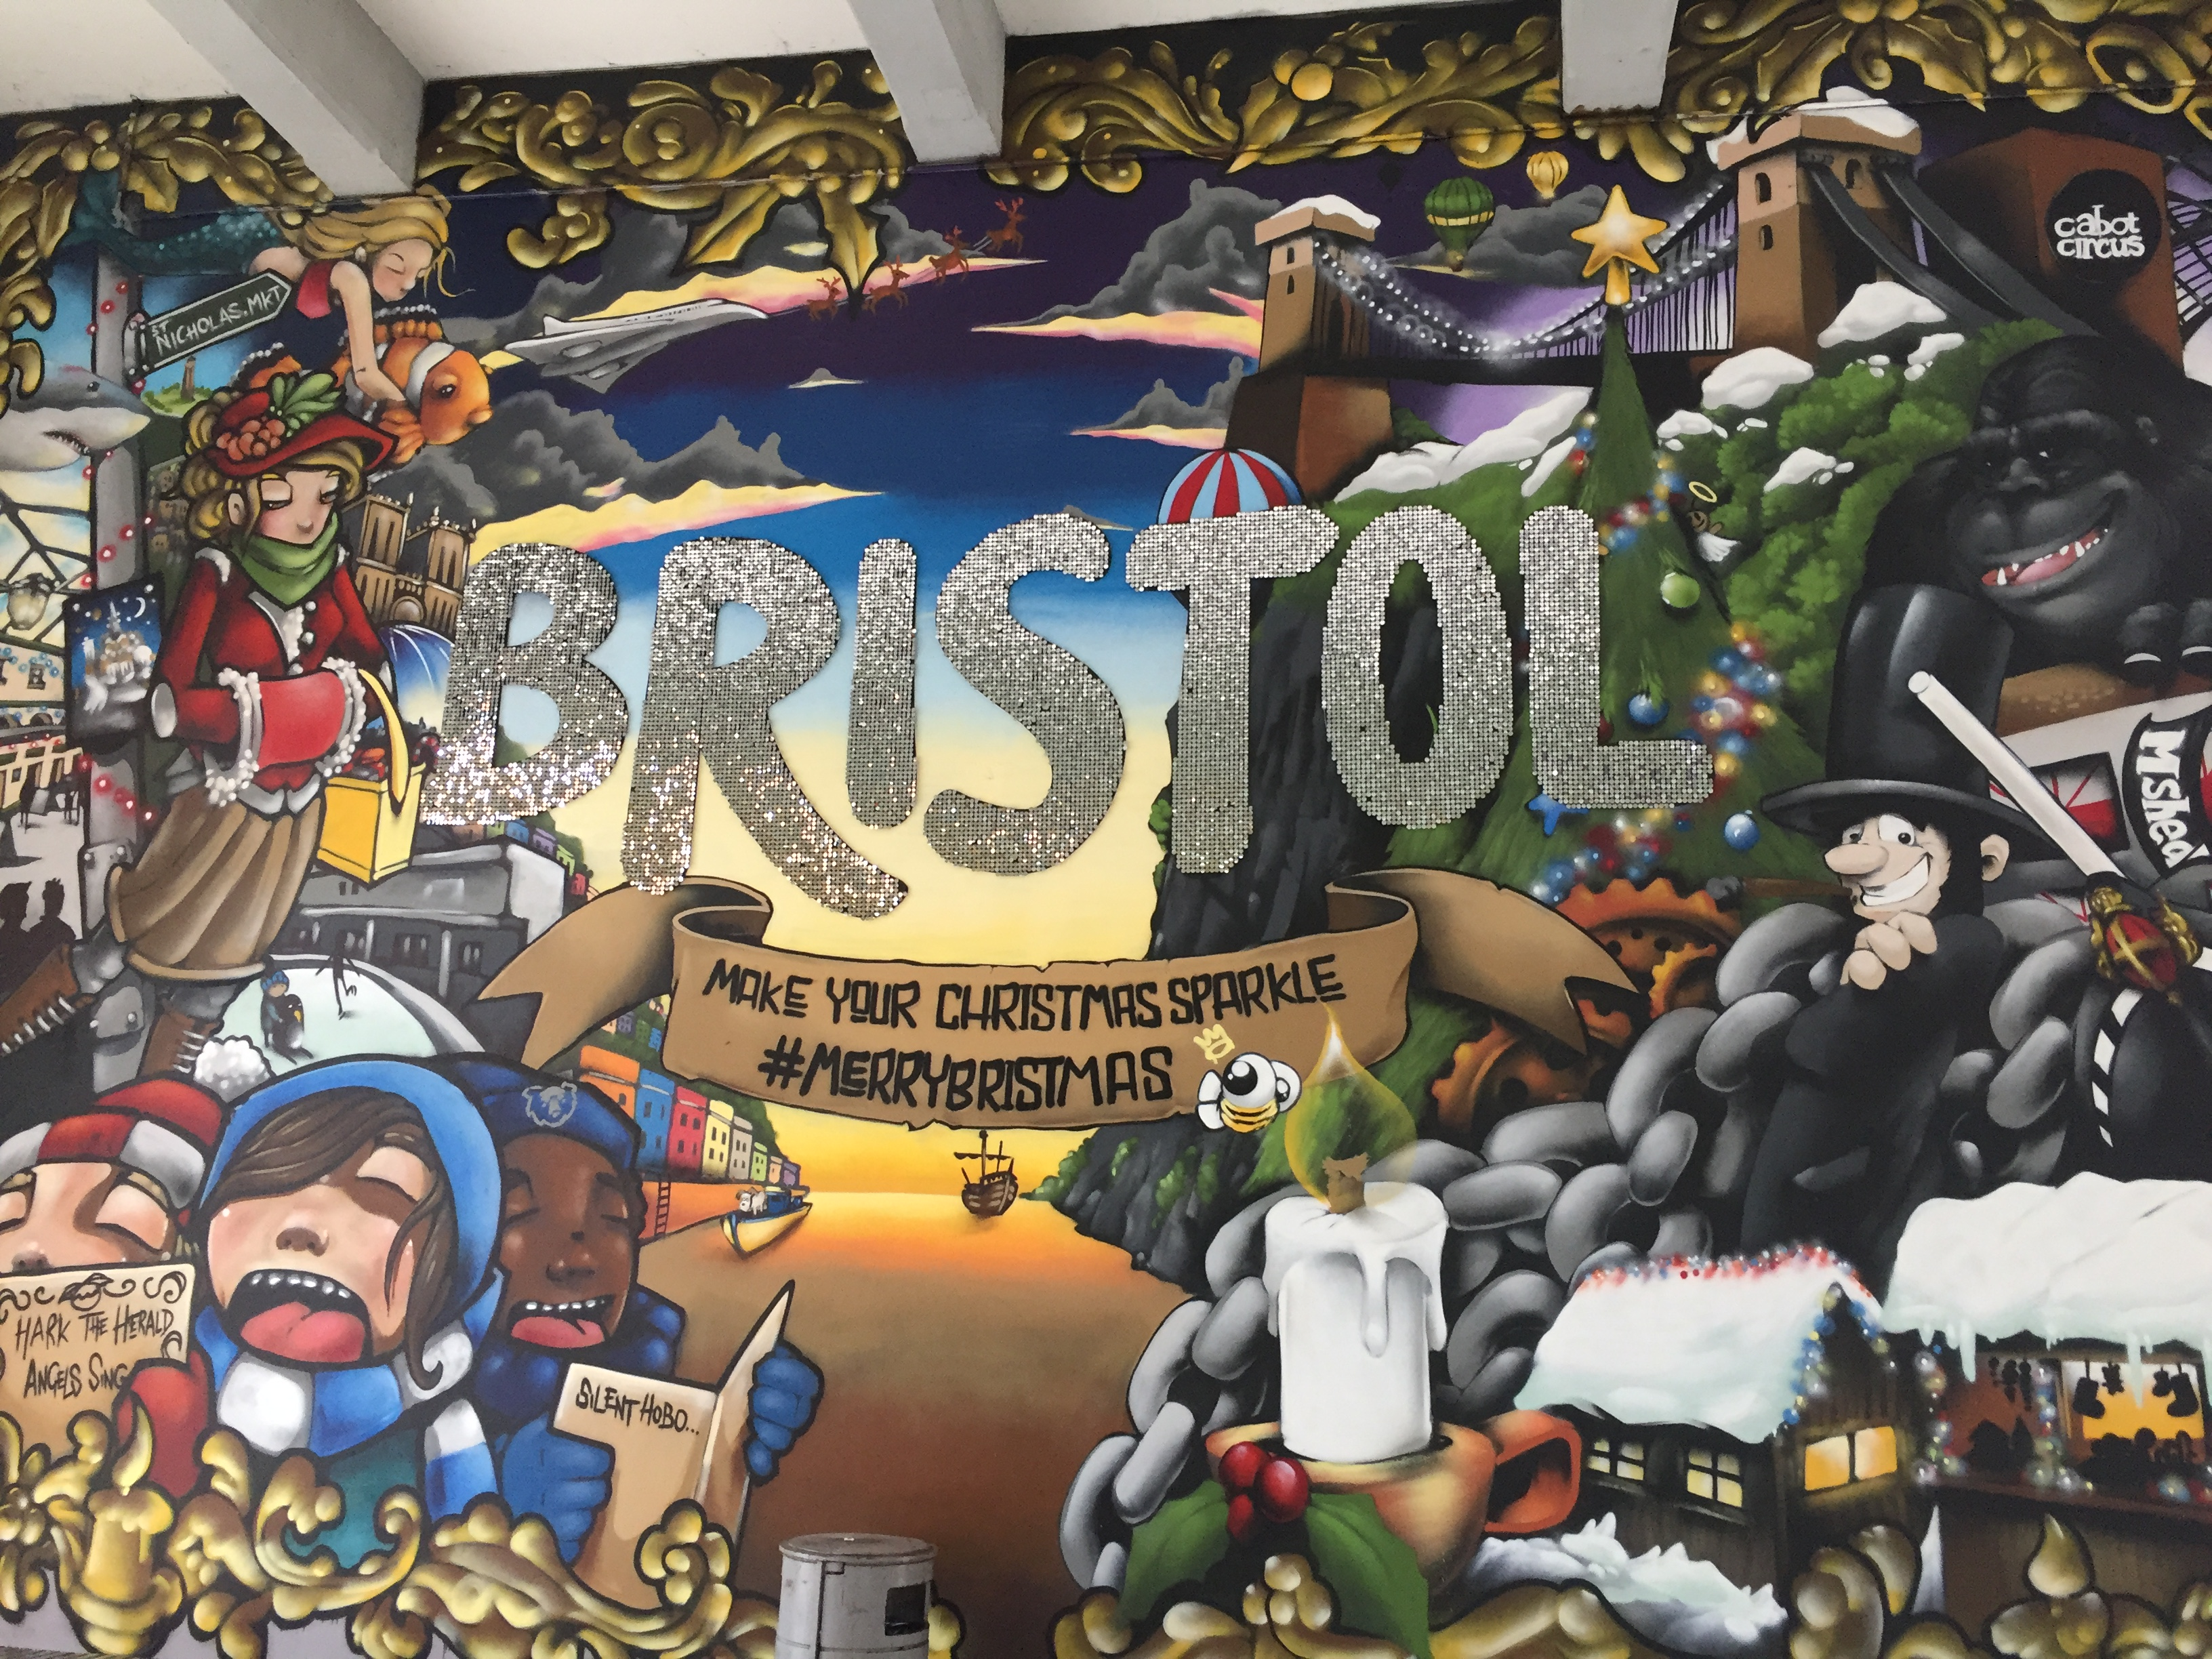 Bristol Christmas Events and Things to do for the family